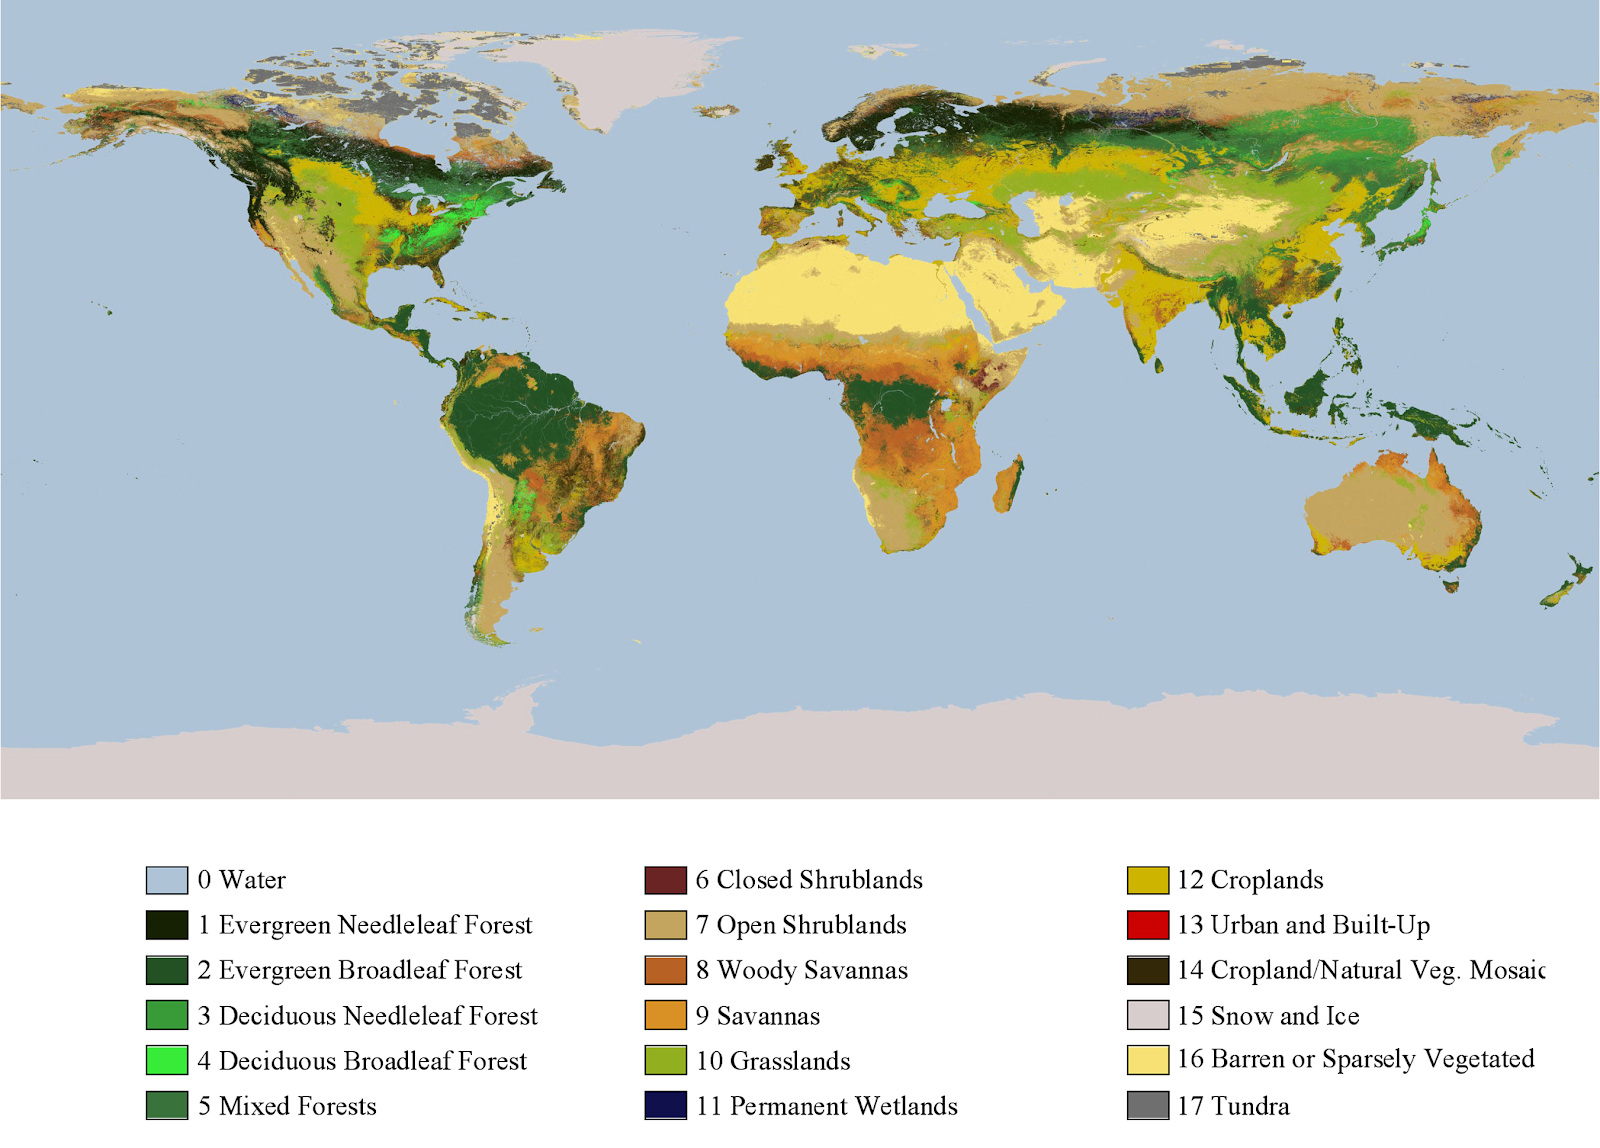 his image shows land cover through a color-coded classification. There are 17 types of land cover, ranging from evergreen needleleaf forest to tundra. Water is depicted in light blue. Credit: NASA GSFC